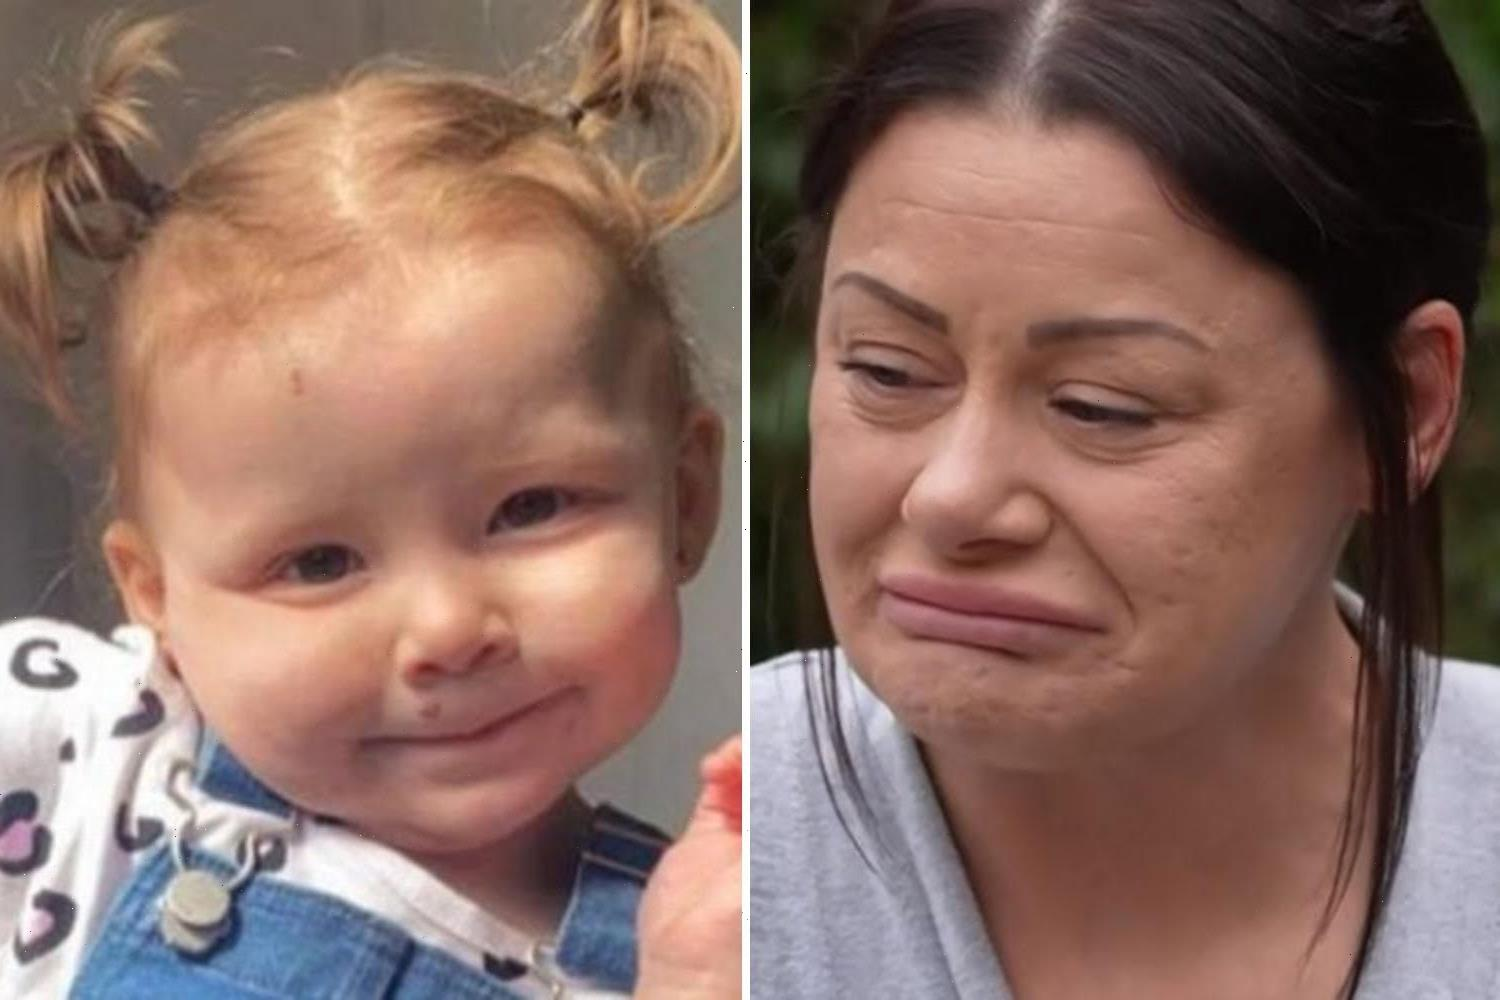 Mum's warning as girl, 2, dies after swallowing battery from remote control